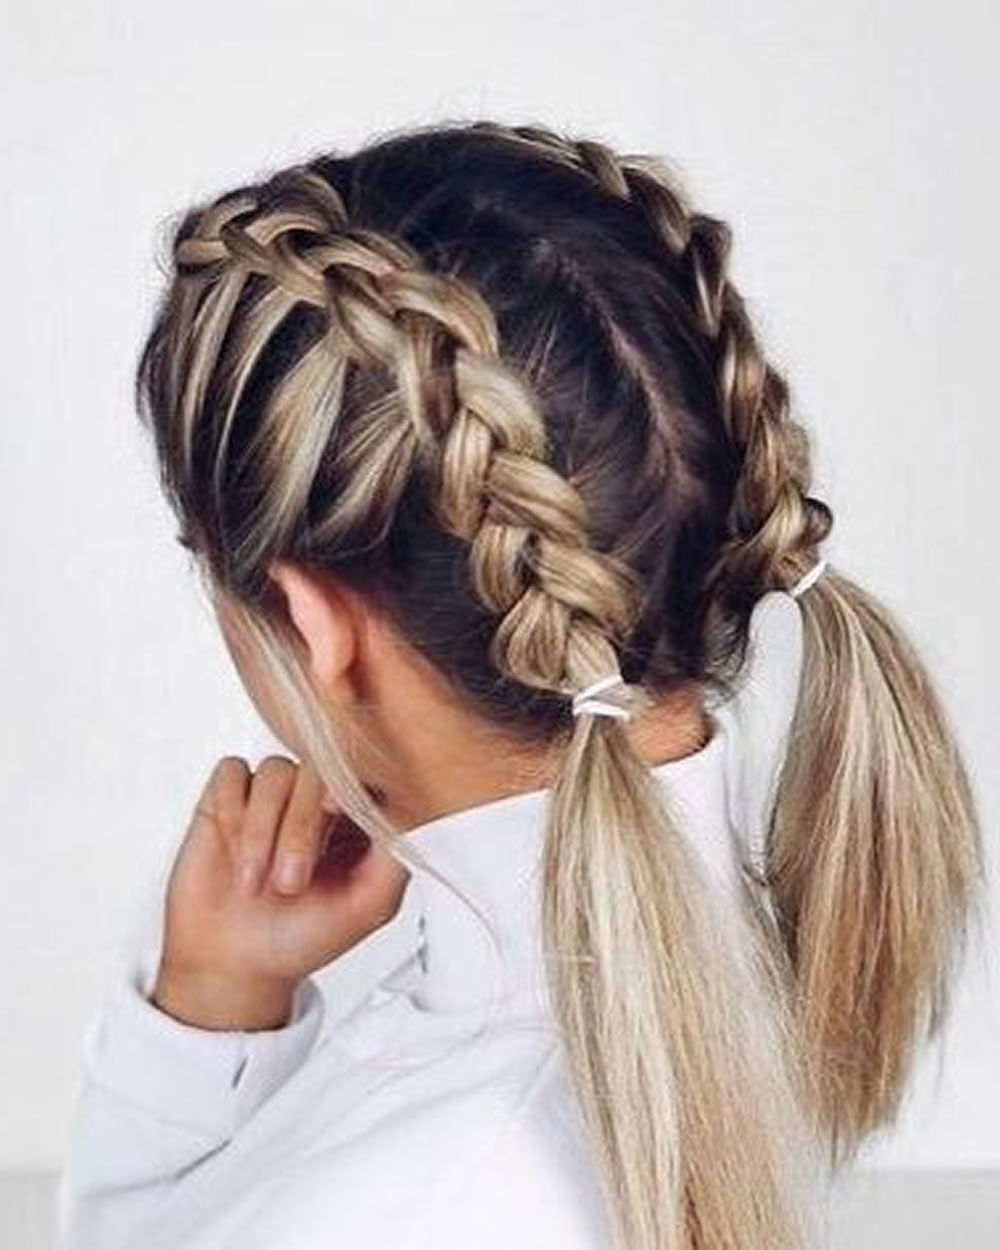 Current Double Half Up Mermaid Braid Hairstyles For Braids 2018 Mermaid Half Up Side Fishtail Etc (View 8 of 20)